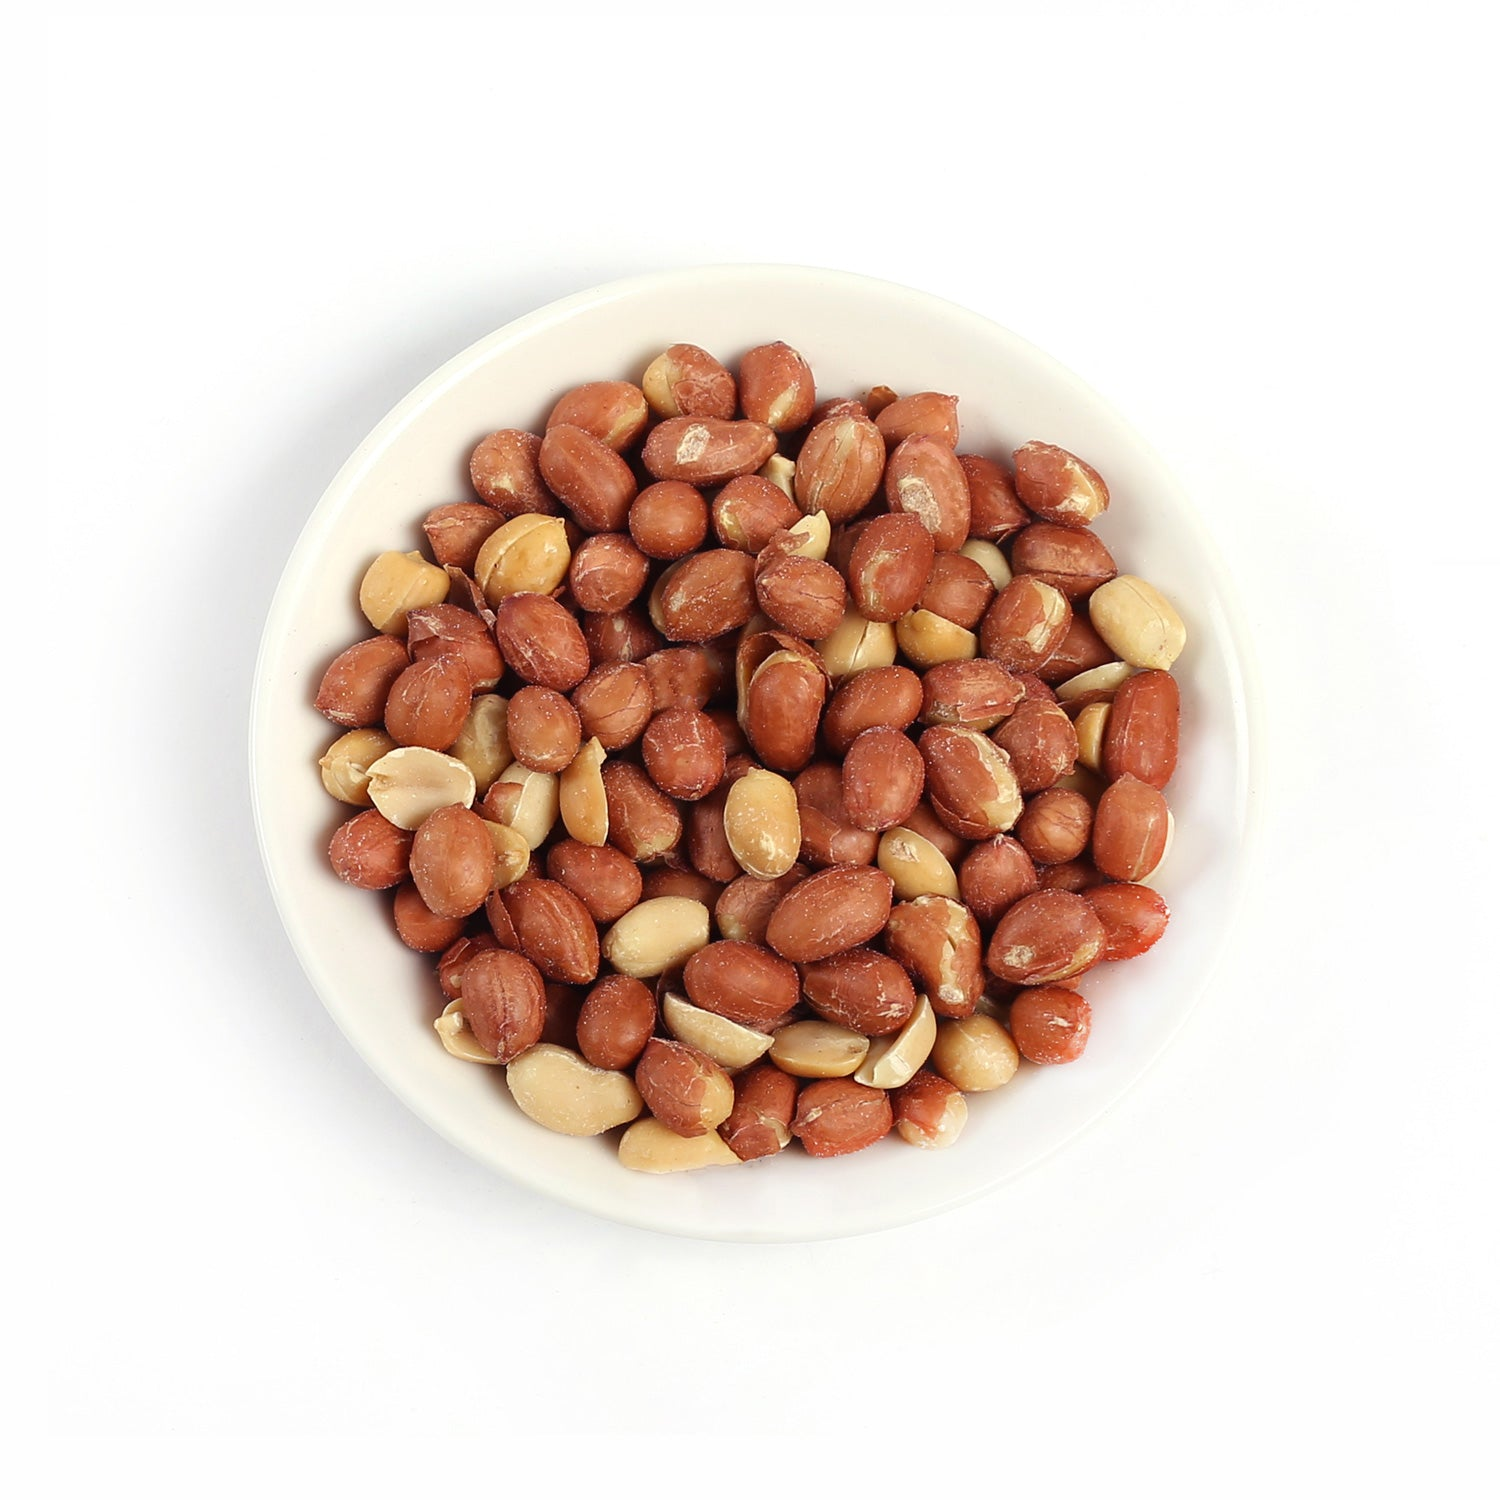 Product photo of salted Spanish peanuts